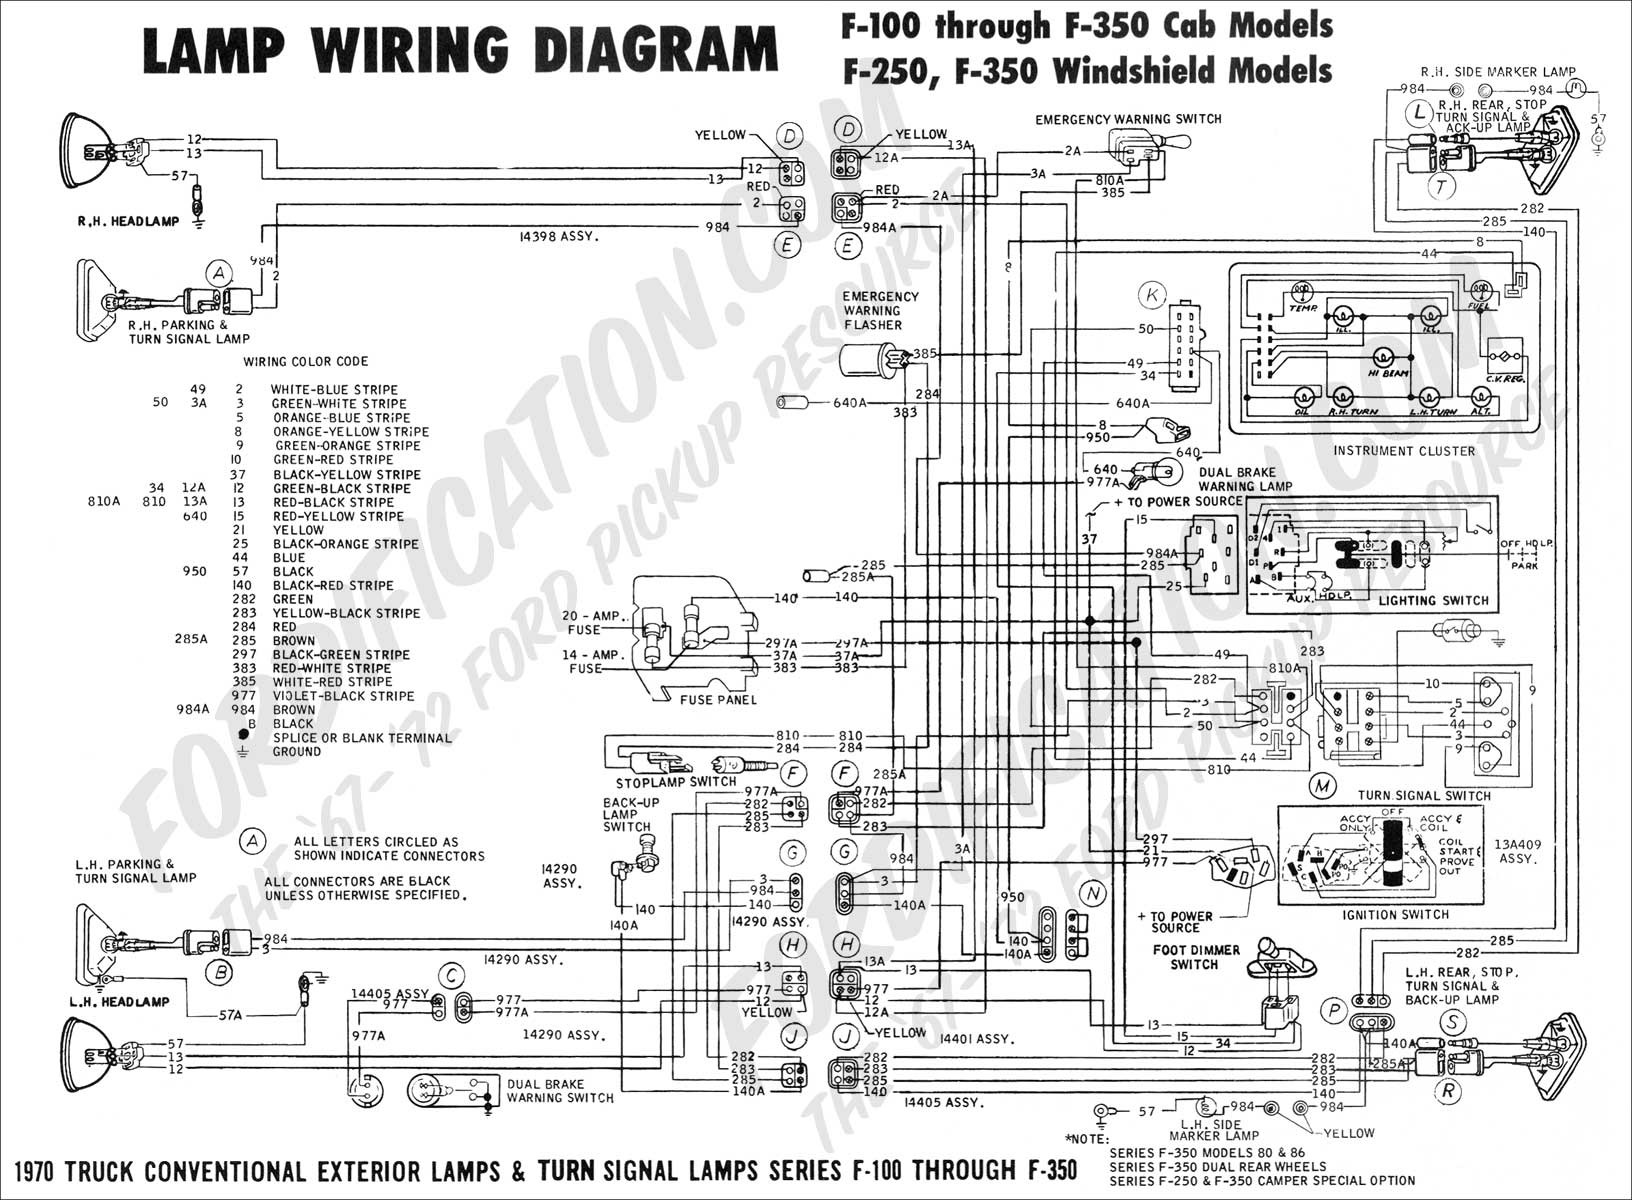 Ford F250 Trailer Wiring Diagram 1996 ford F 350 Wiring Wiring Info • Of Ford F250 Trailer Wiring Diagram